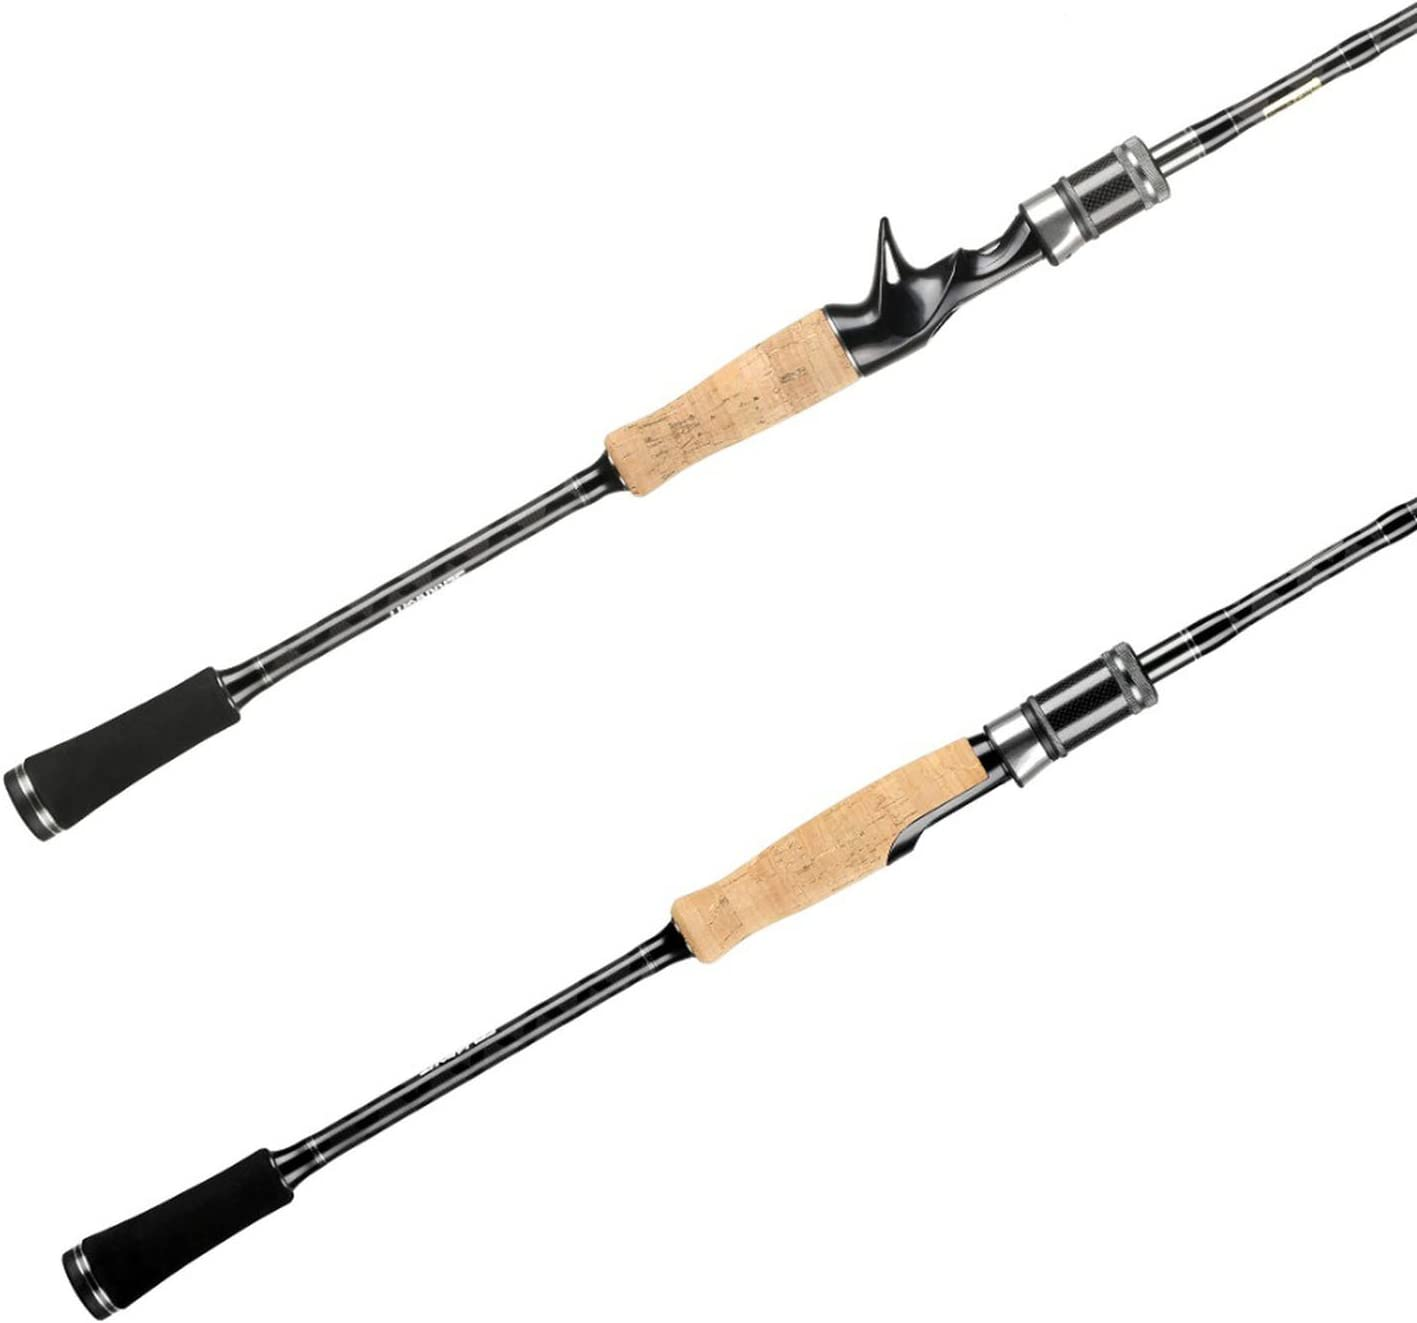 Hollday-store Fishing rod Barra de Pesca de 2 Puntas M&ML de 1,98 ...